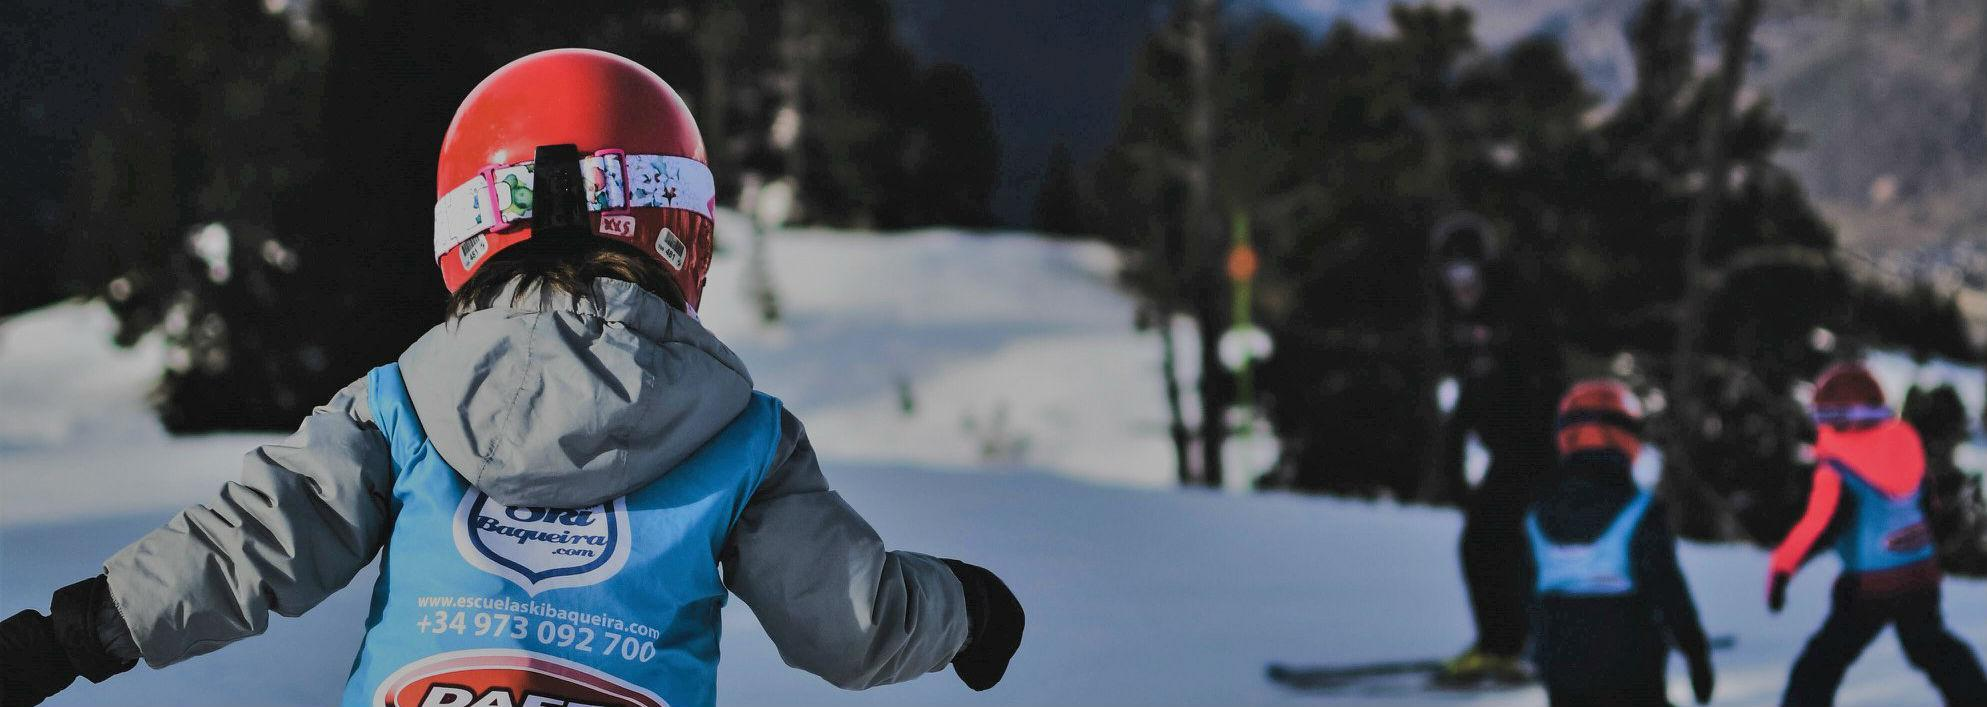 Ski Lessons Kids (4-17 years) - Incl. Equipment - All Levels by ... a5ae5c248